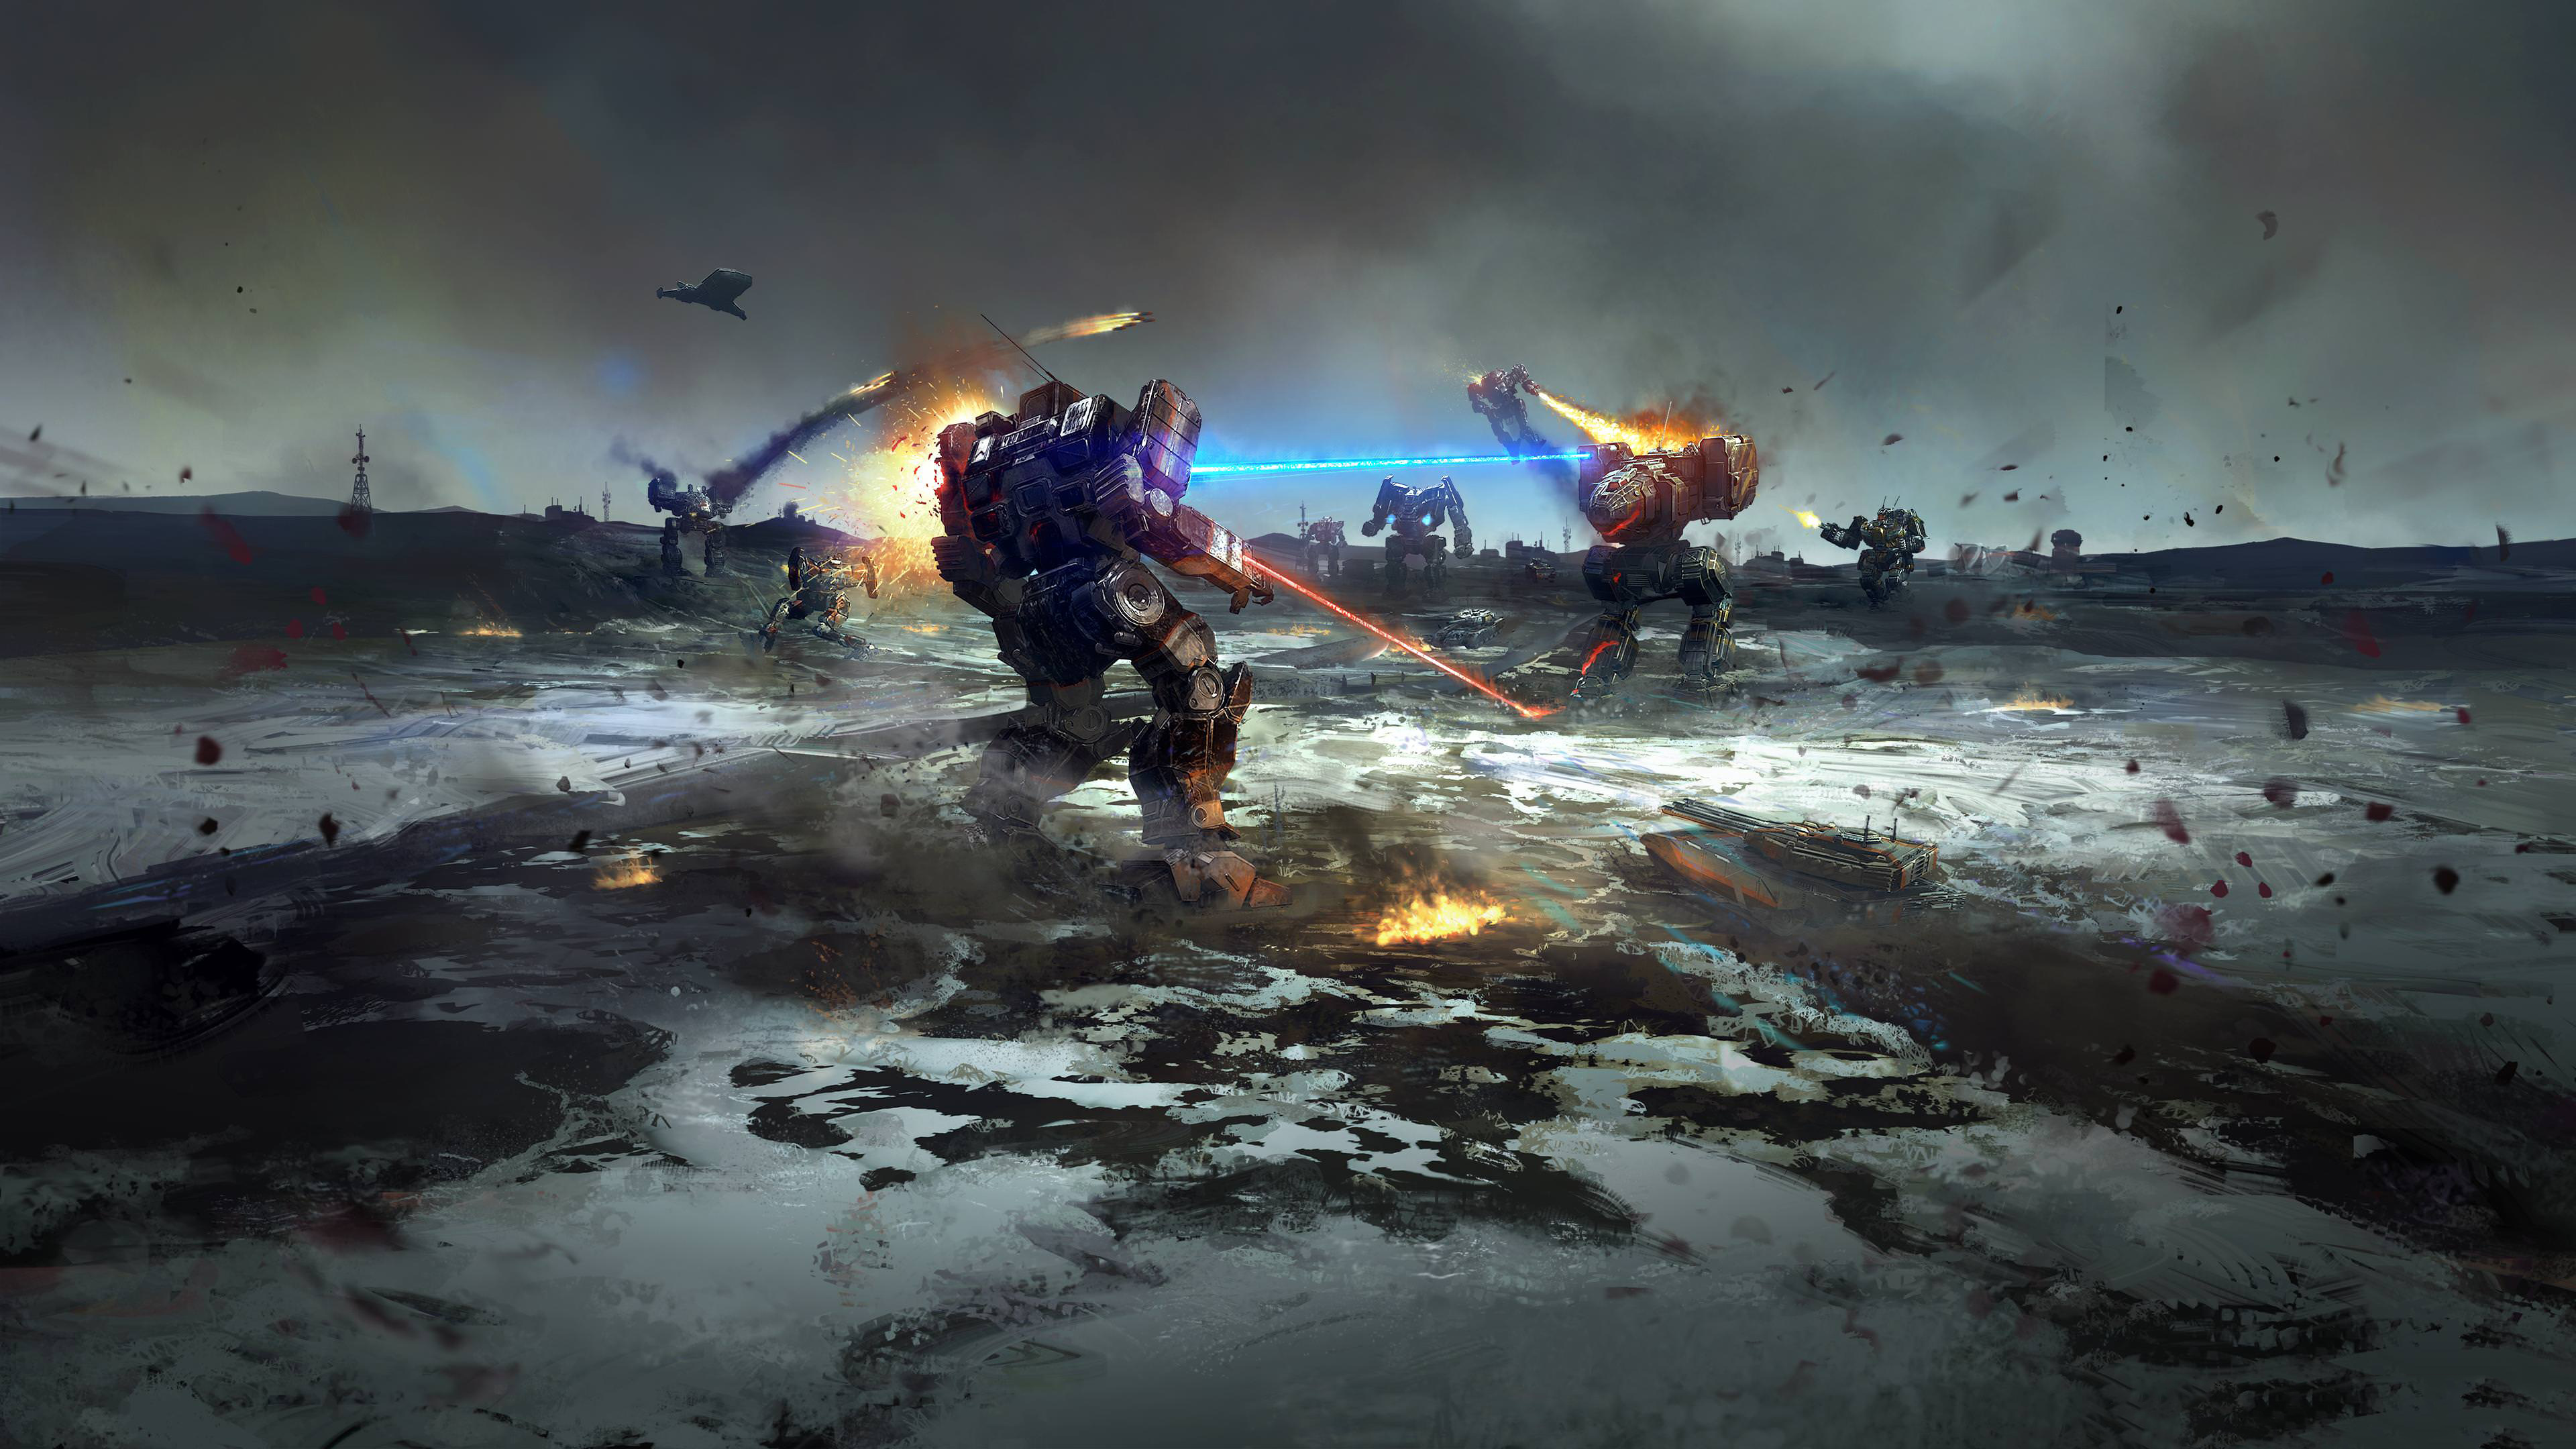 battletech game 2019 4k 1547938508 - Battletech Game 2019 4k - pc games wallpapers, hd